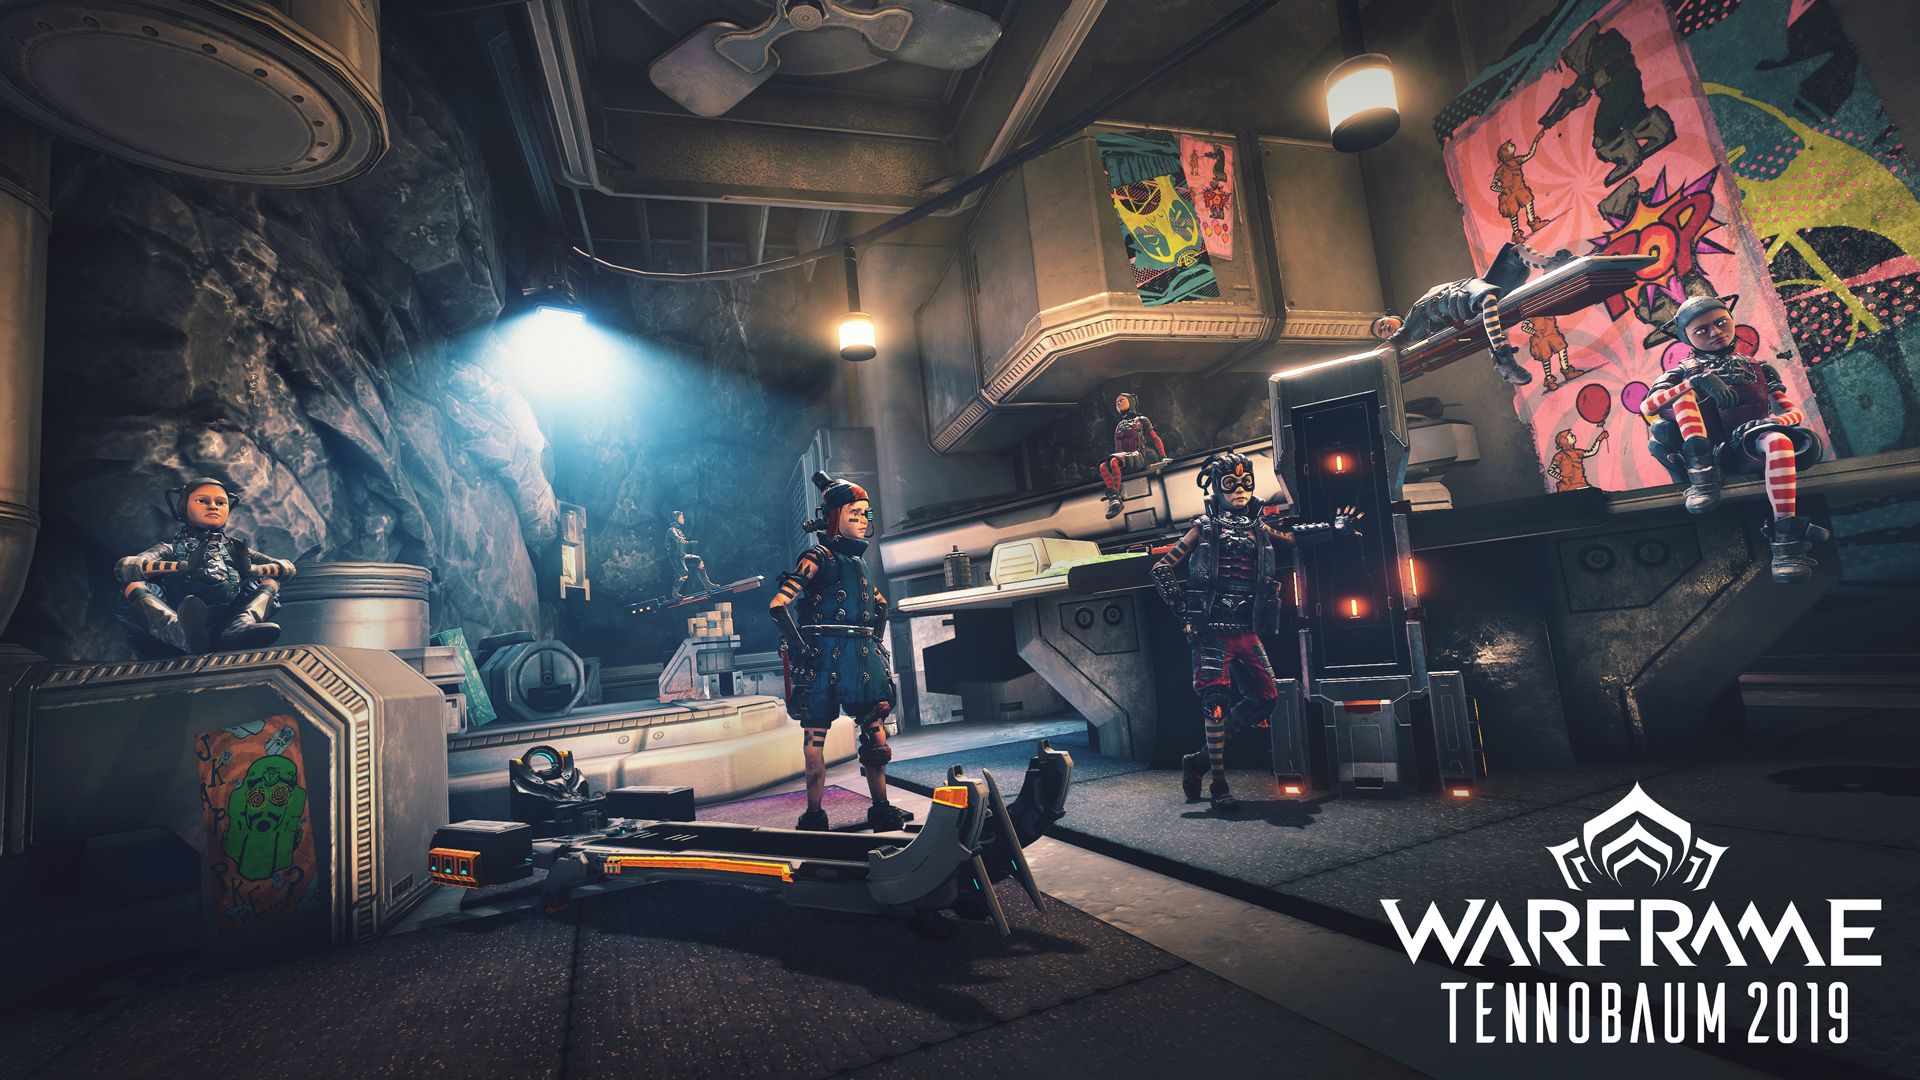 Tennobaum 2019 Feeding Through The Gift Of Giving Announcements Events Warframe Forums With your warframe offline, it's time to bring out the heavy hitters. tennobaum 2019 feeding through the